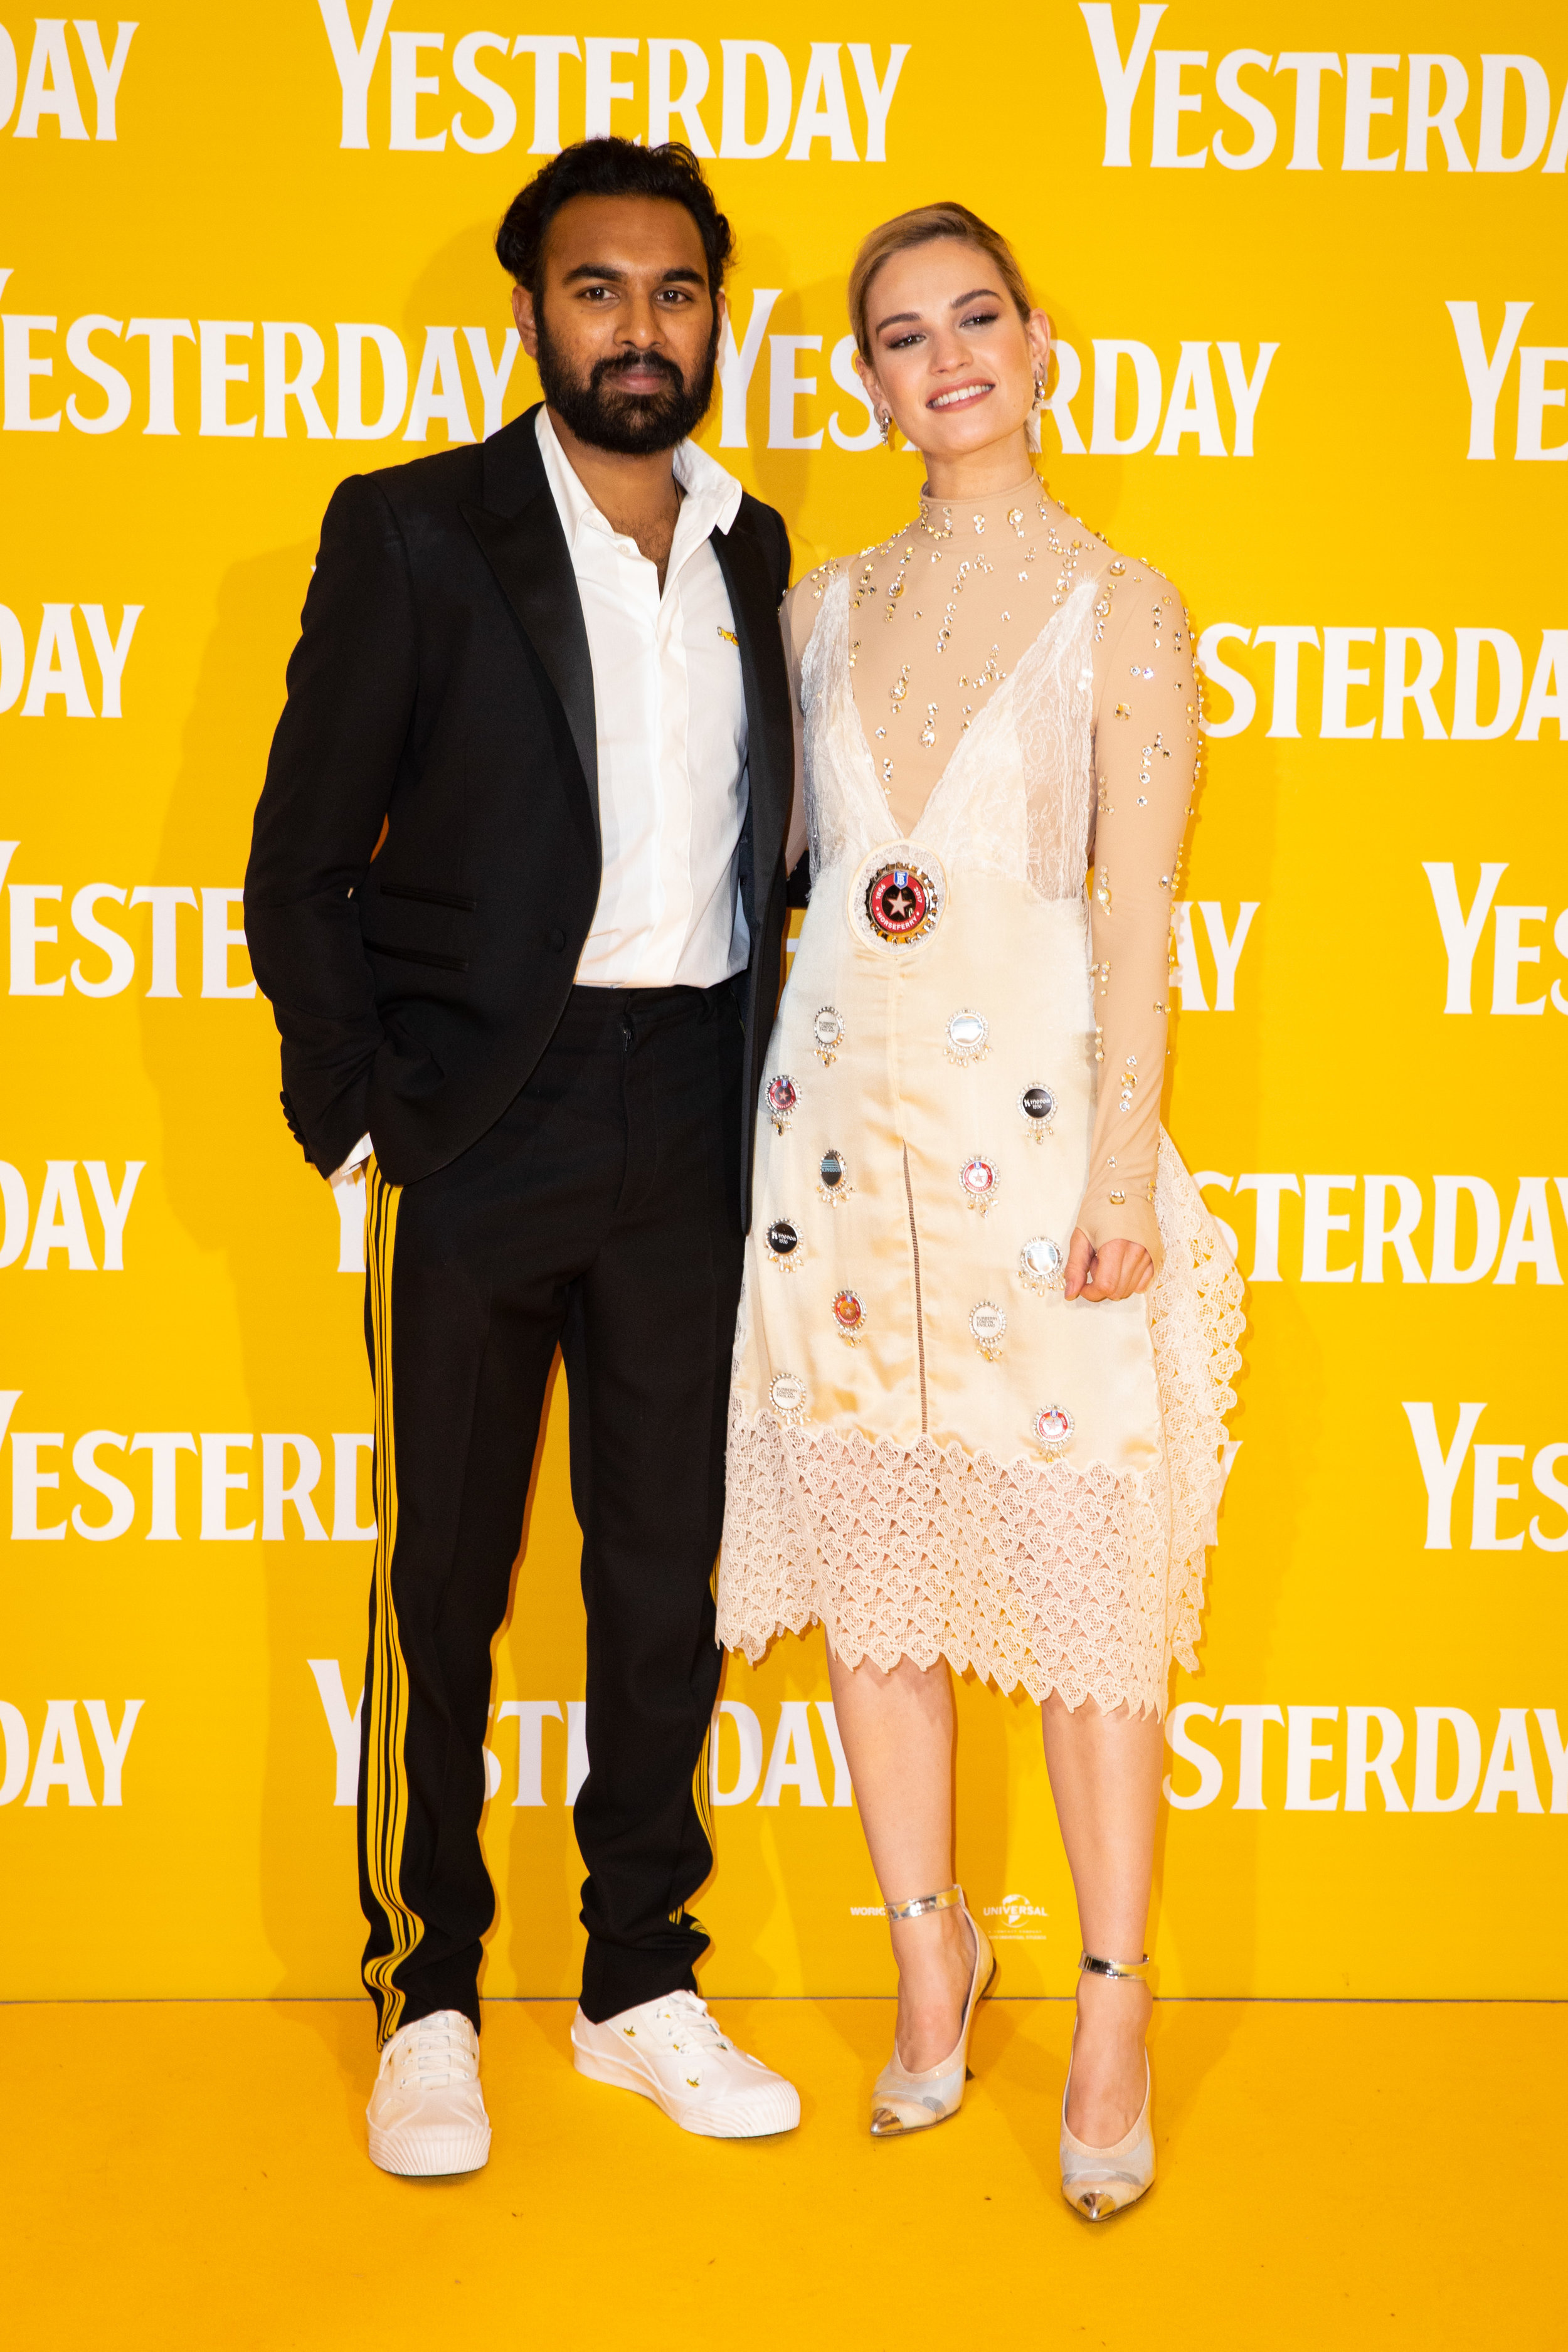 Himesh Patel and Lily James at the London Premiere (Credit: James Gillham / StillMoving.net)